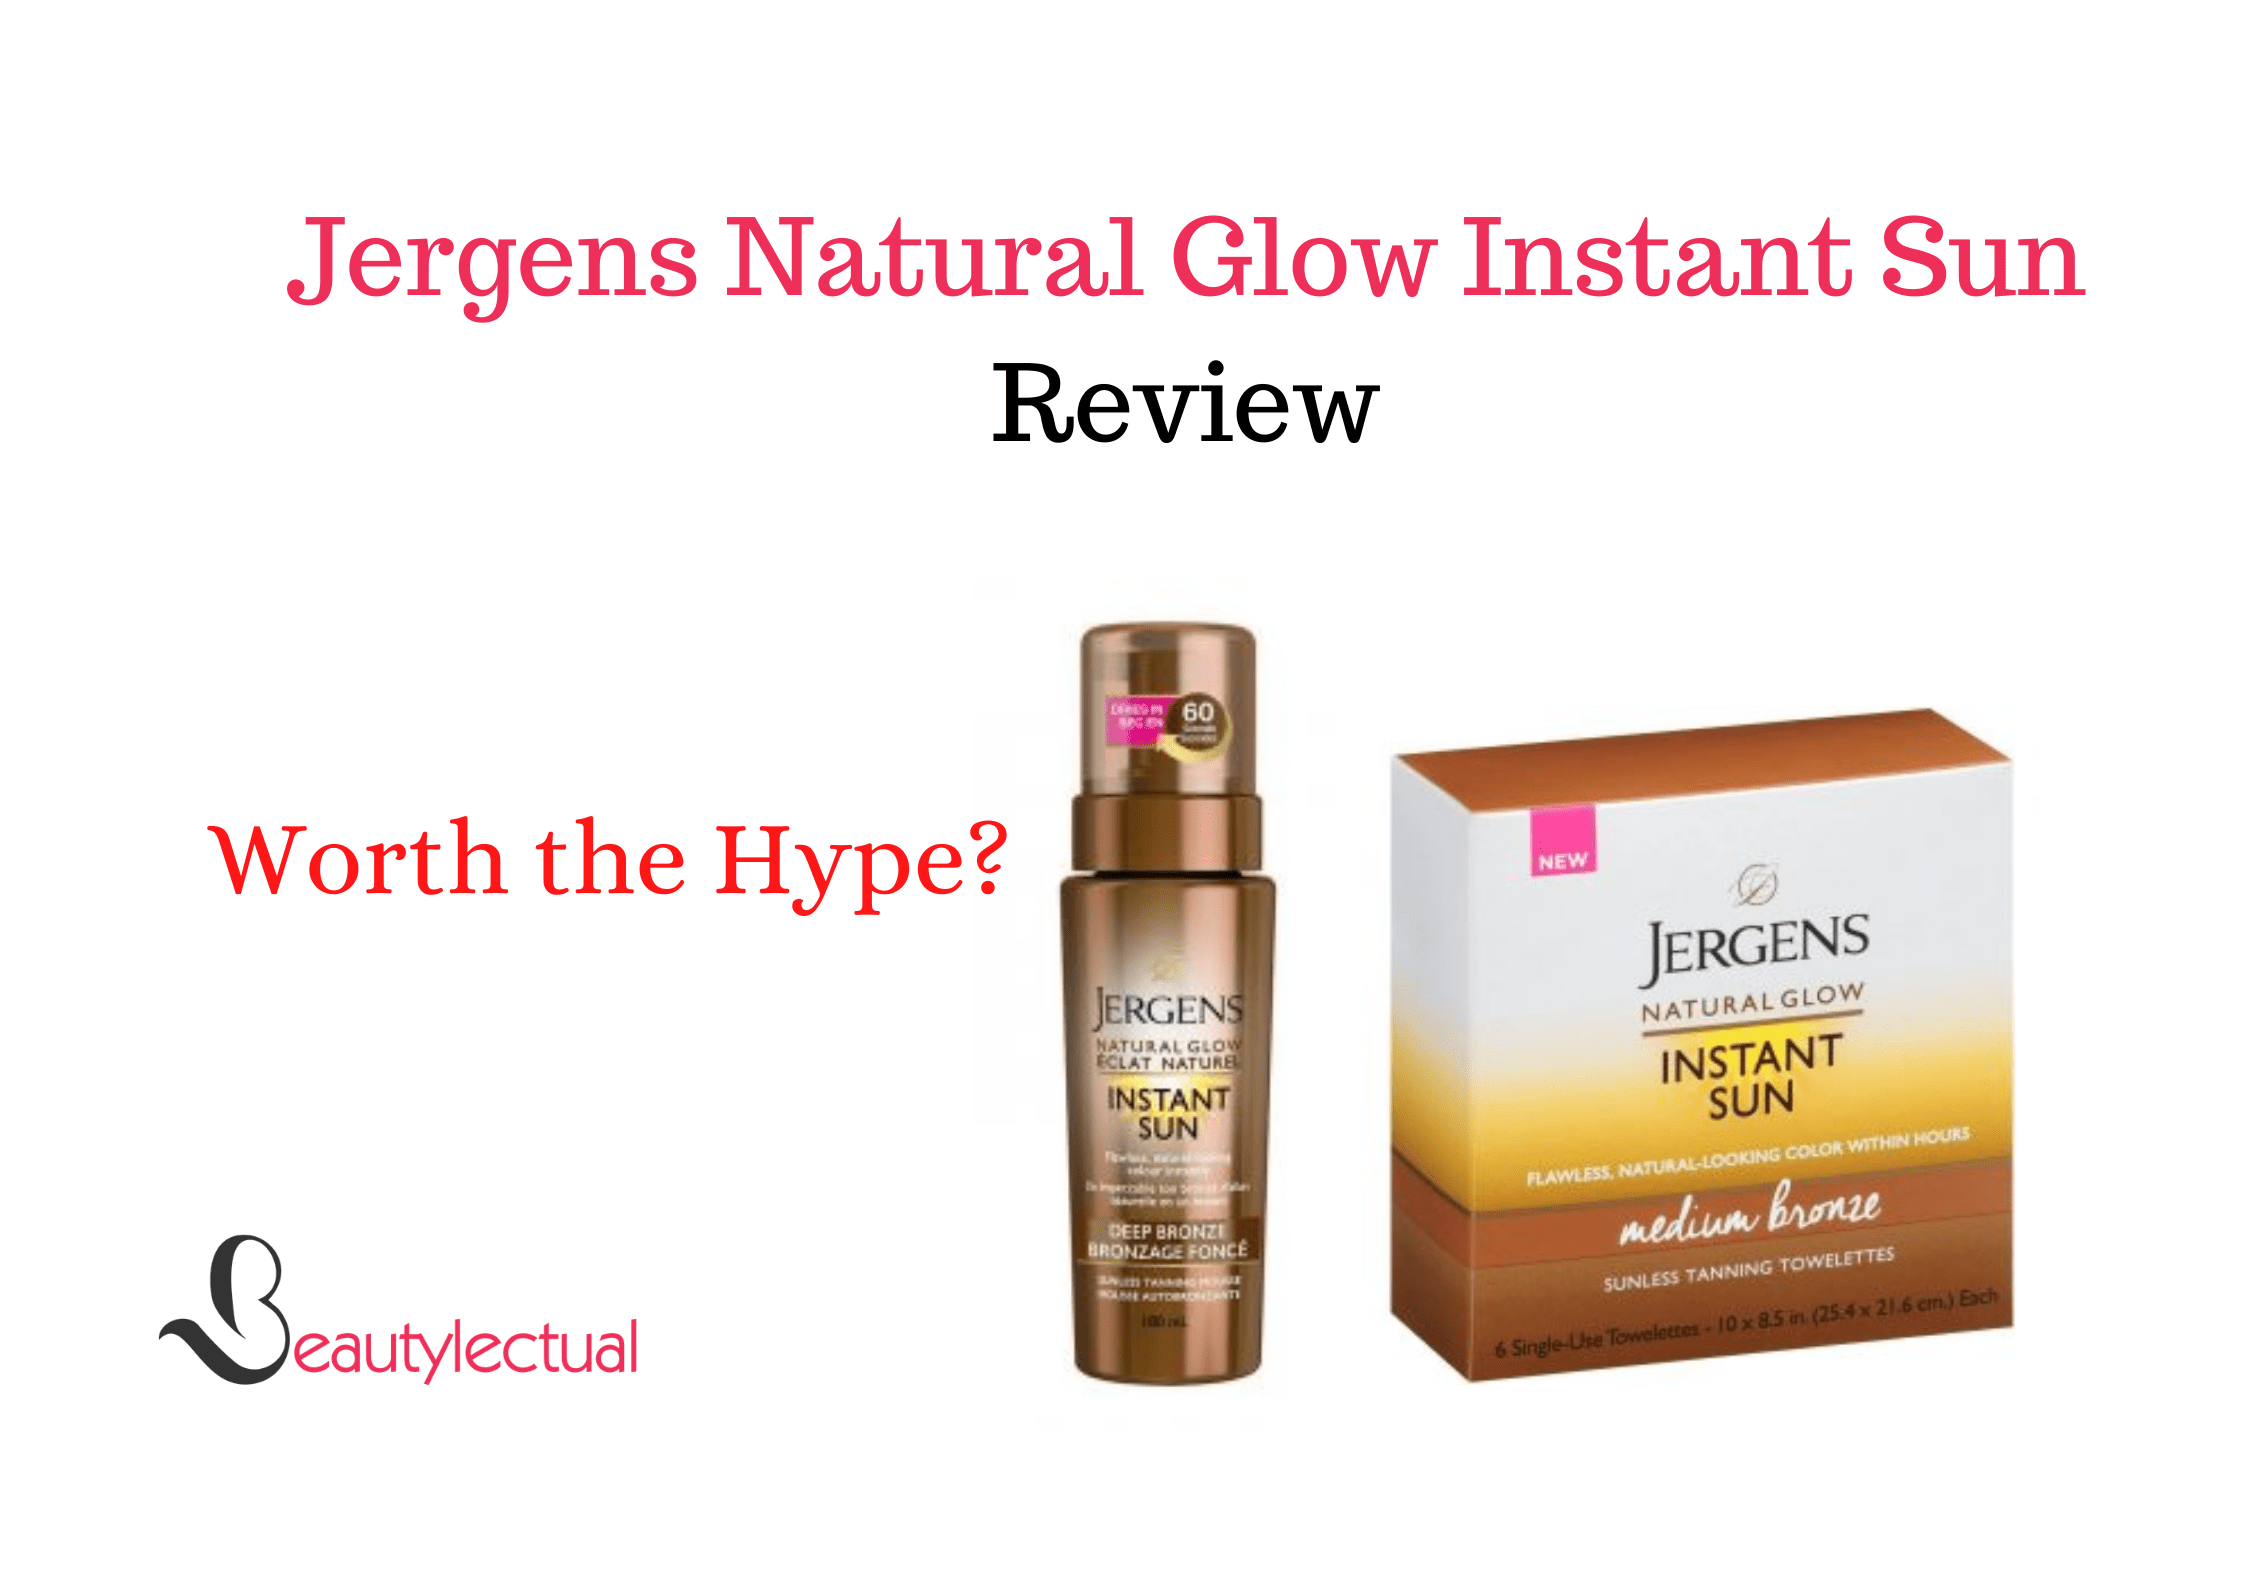 Jergens Natural Glow Instant Sun Reviews